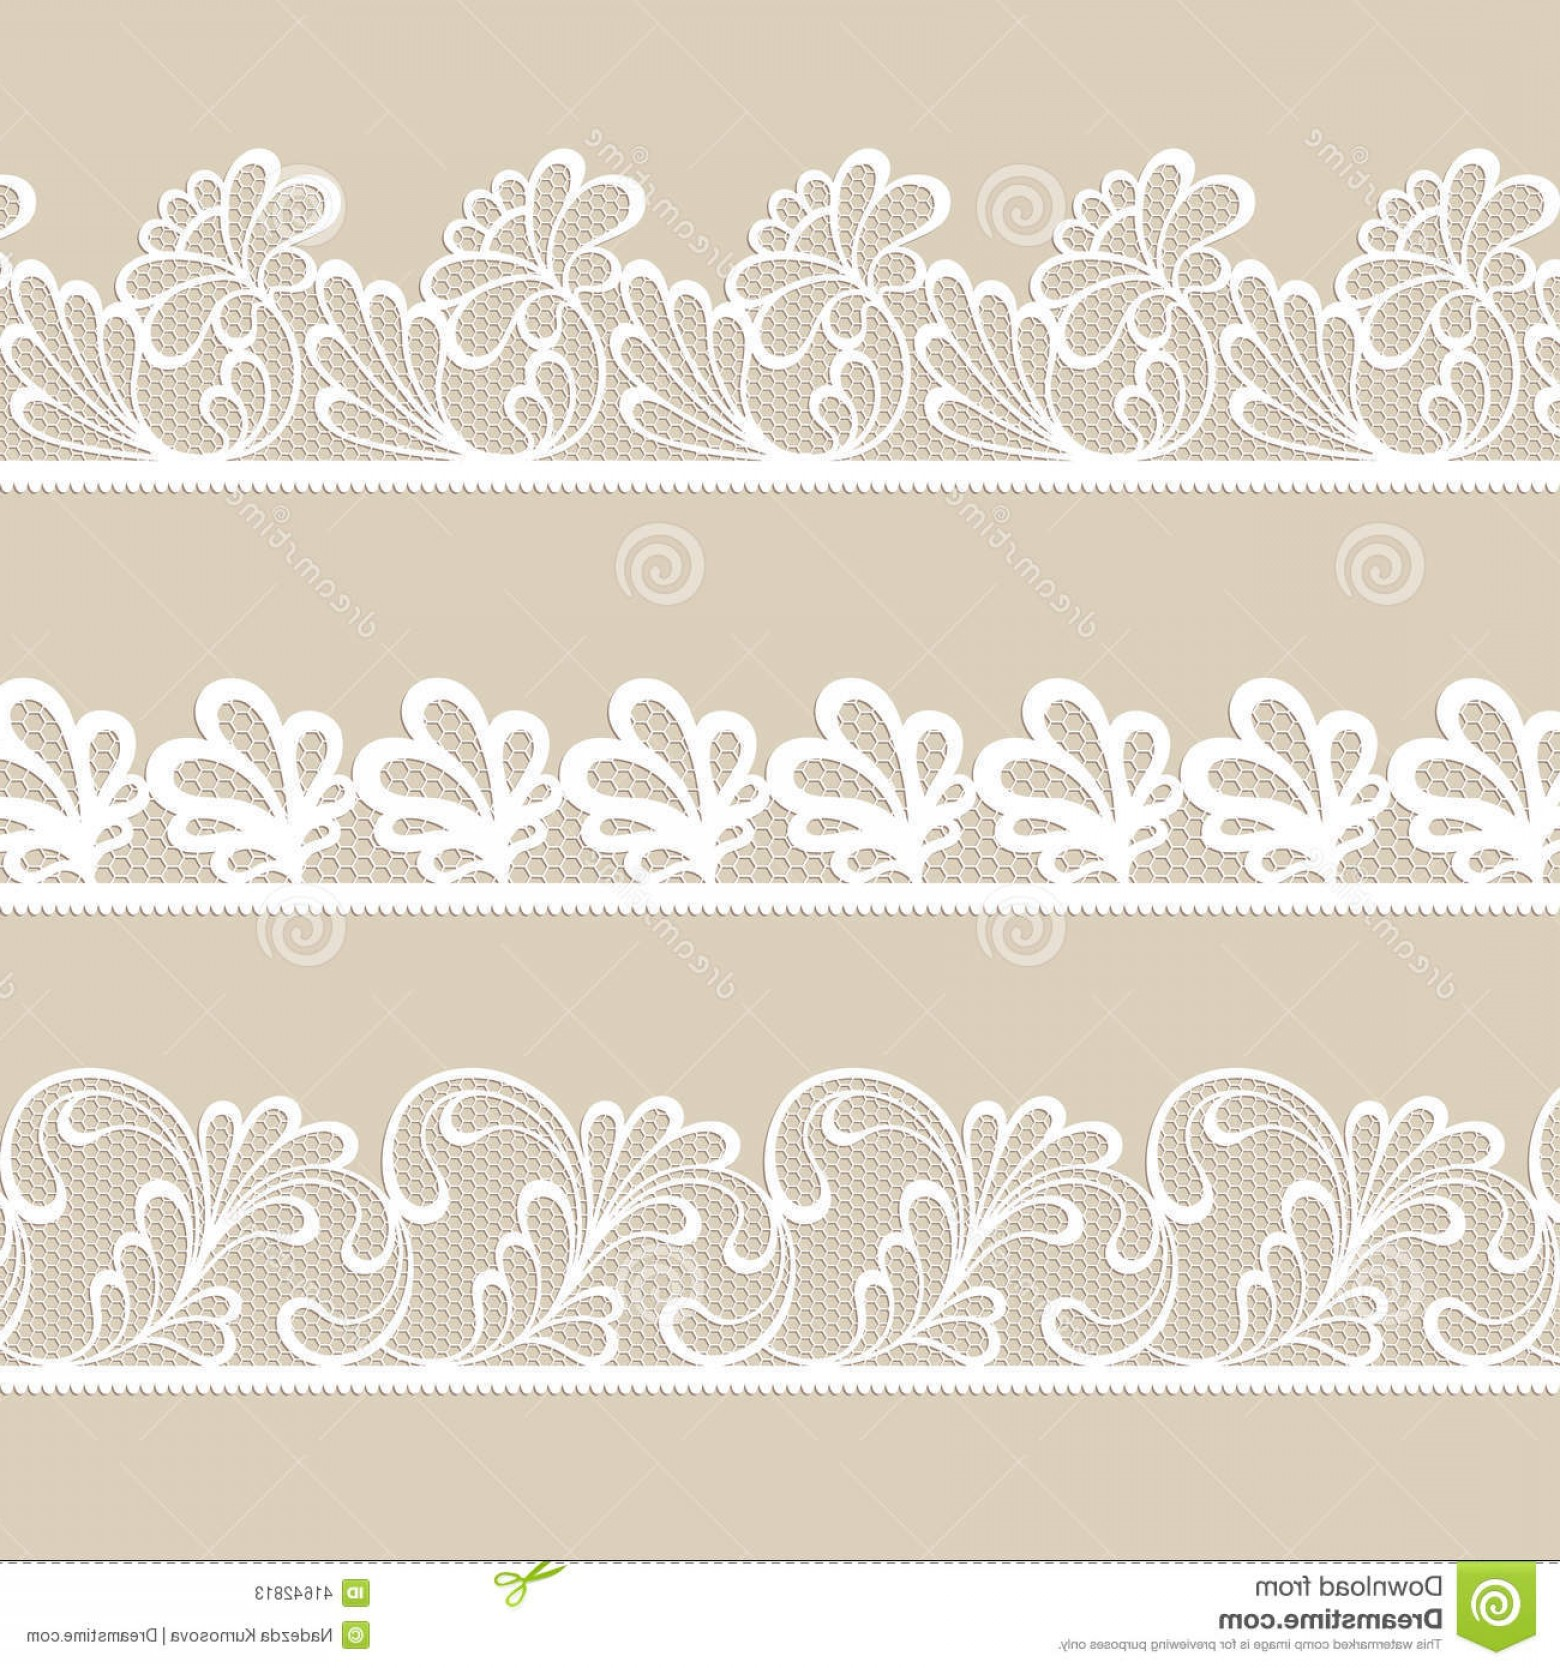 White Lace Vector: Stock Illustration Set Lace Vector Borders White Image